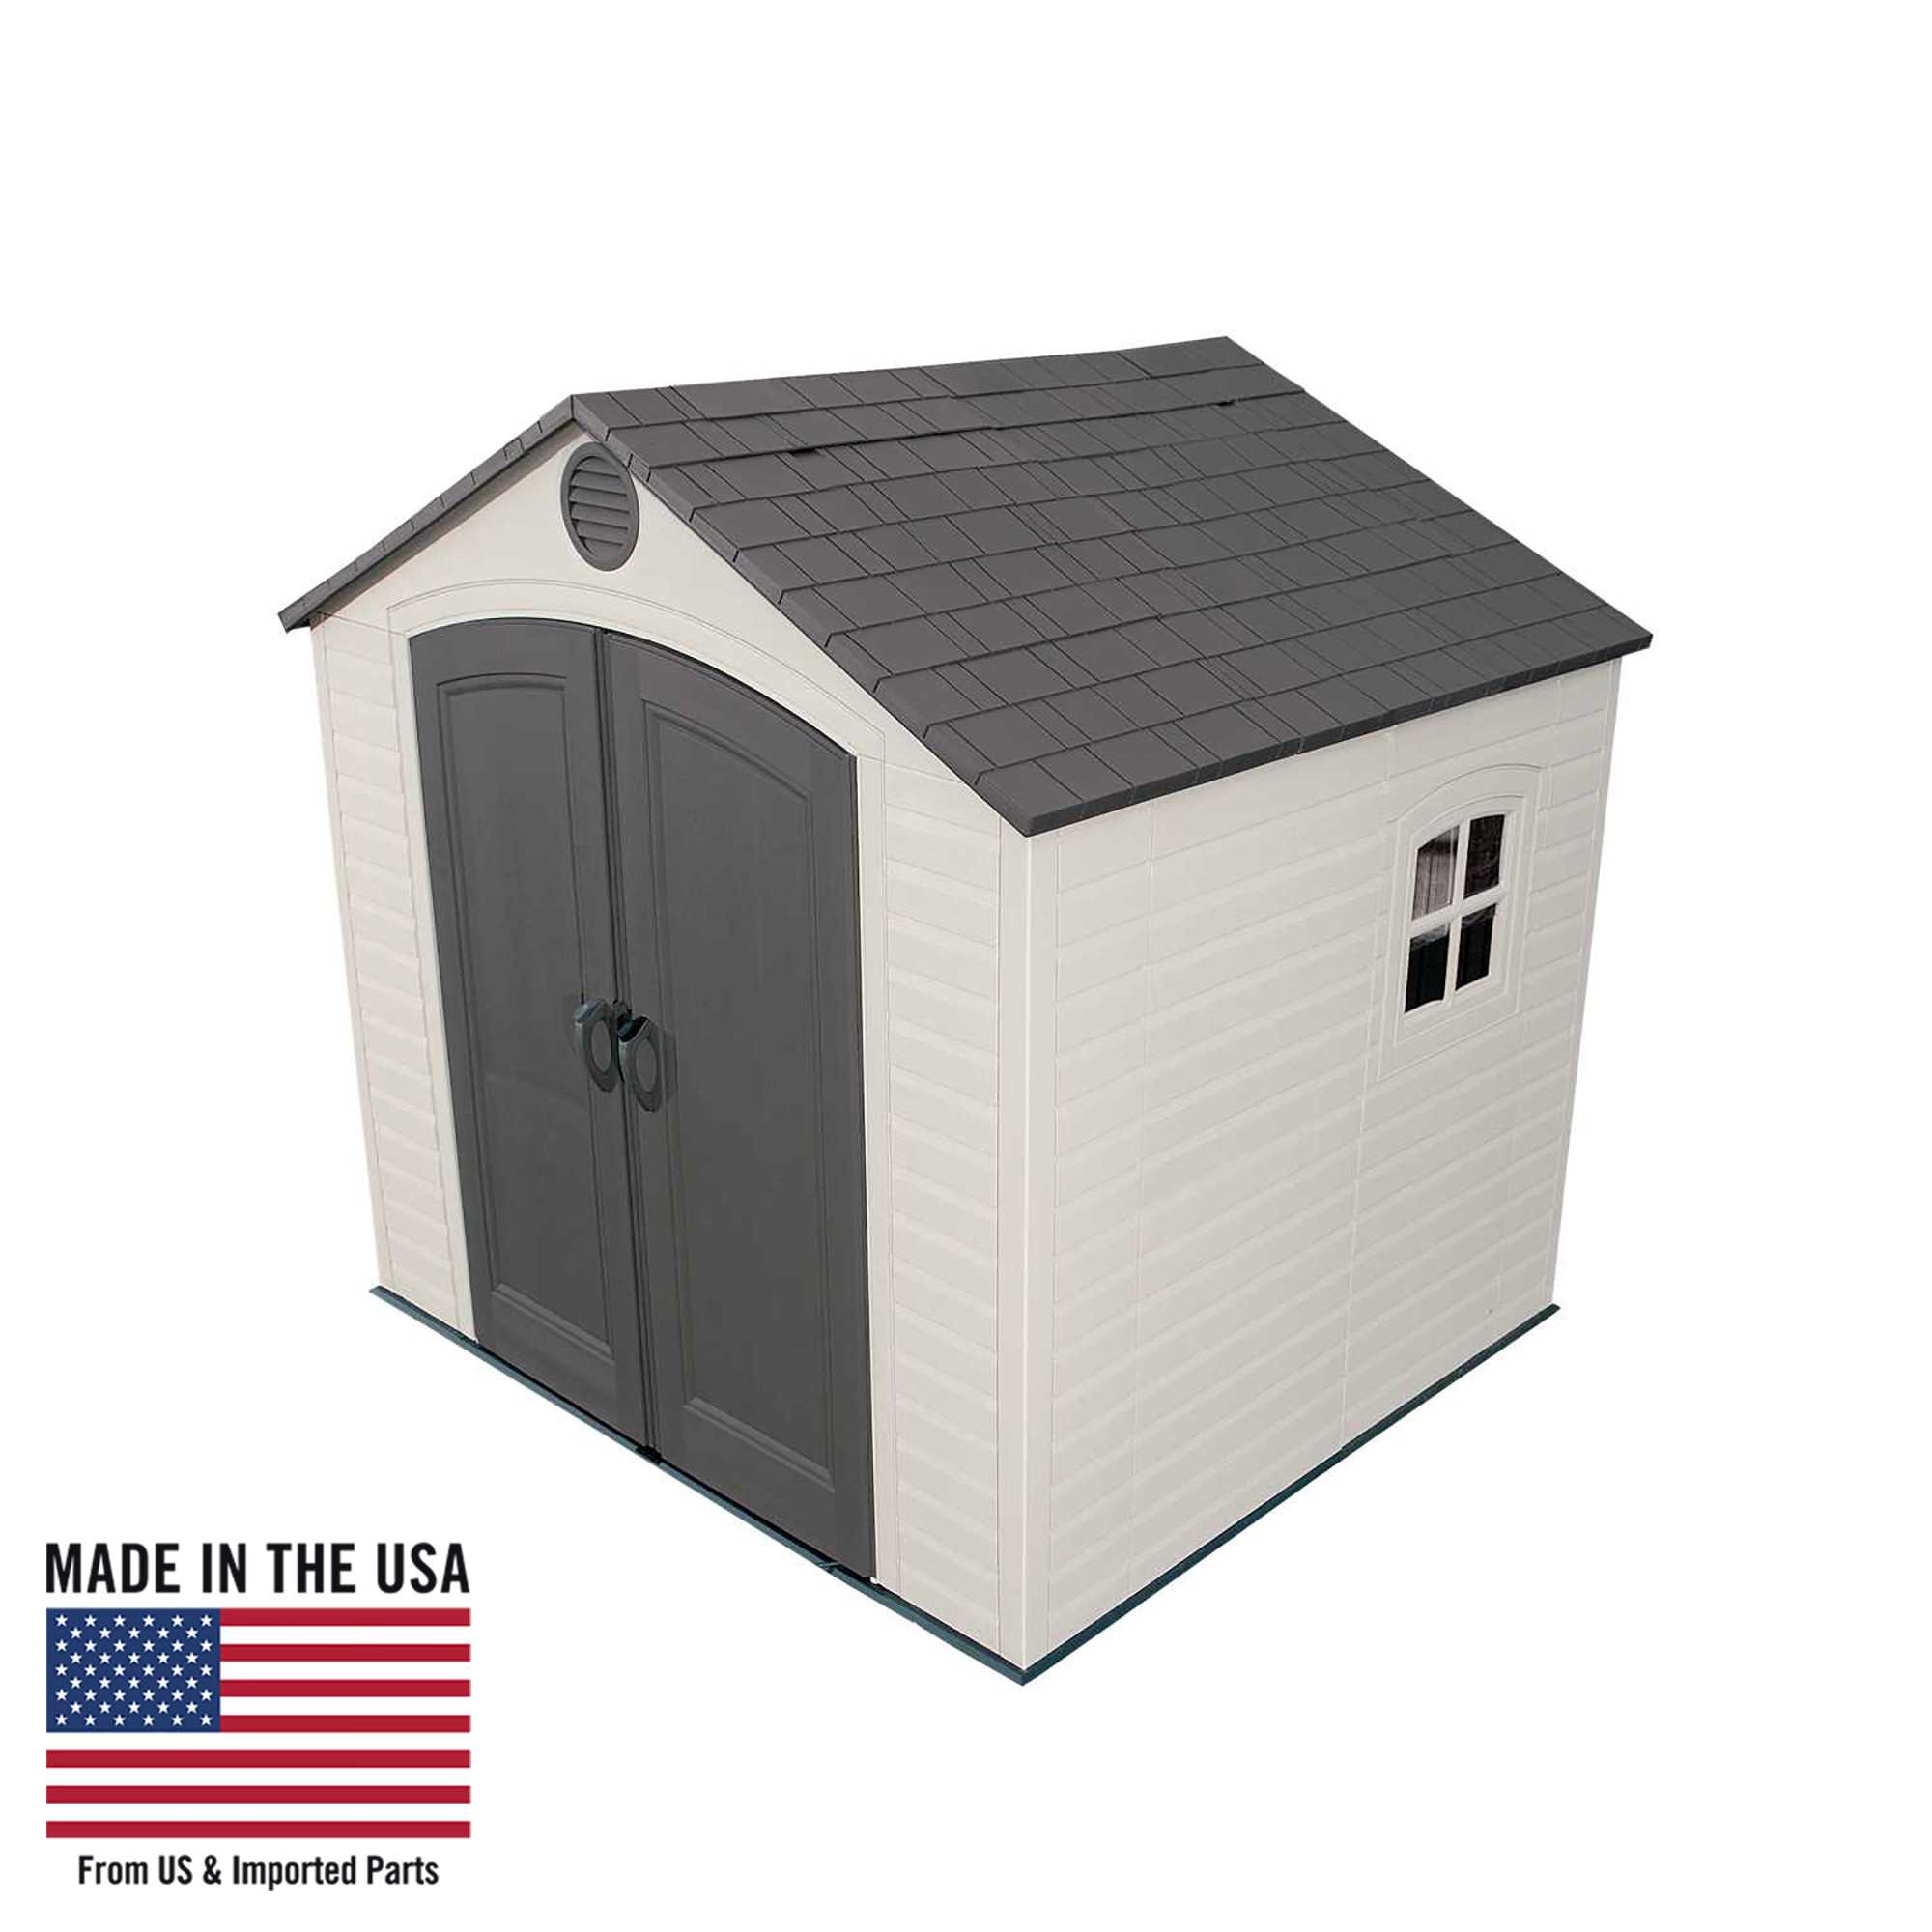 Lifetime 8 fF. x 7.5 Ft. Outdoor Storage Shed